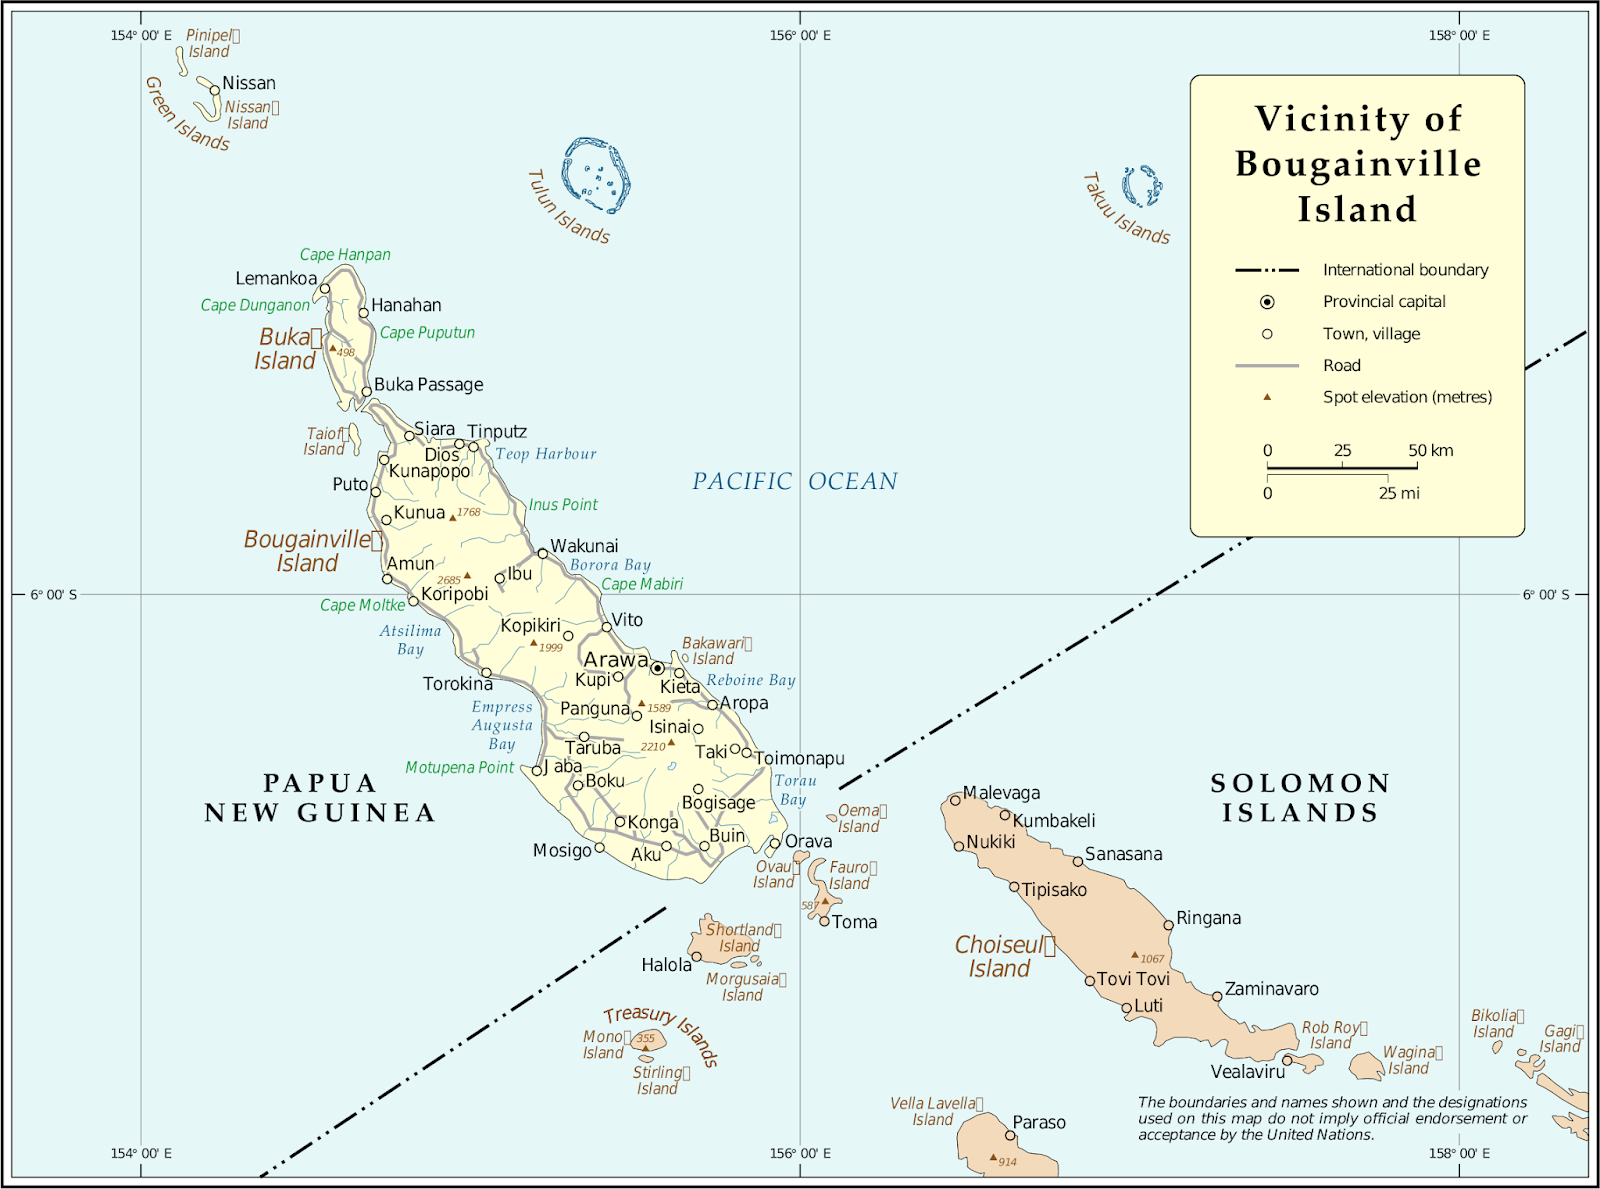 Bougainville map, showing the island region's main geographical features and location related to the country of Solomon Islands